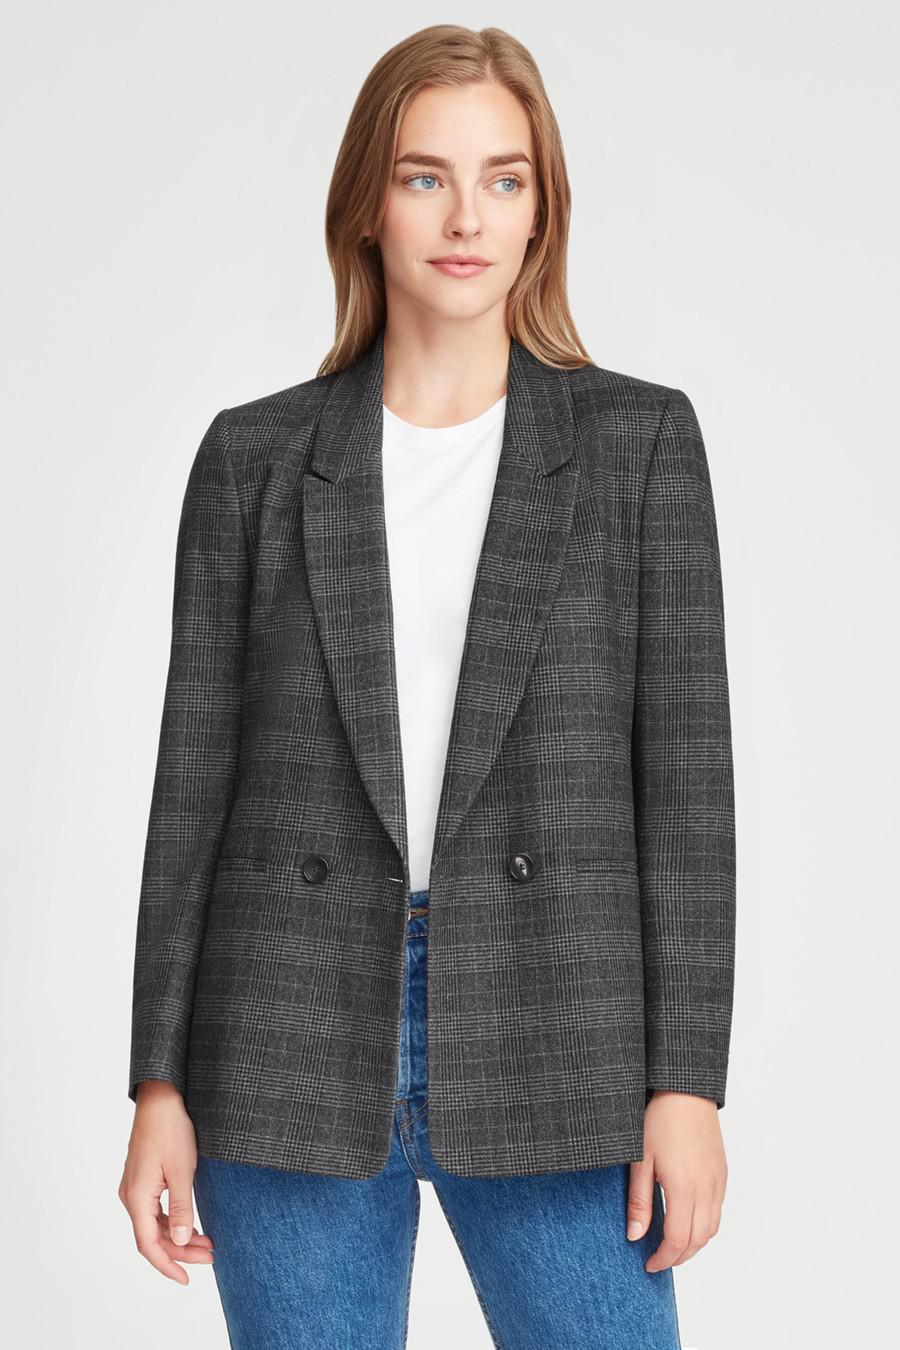 Women's Wool Double-Breasted Blazer in Grey Plaid   Size: 1